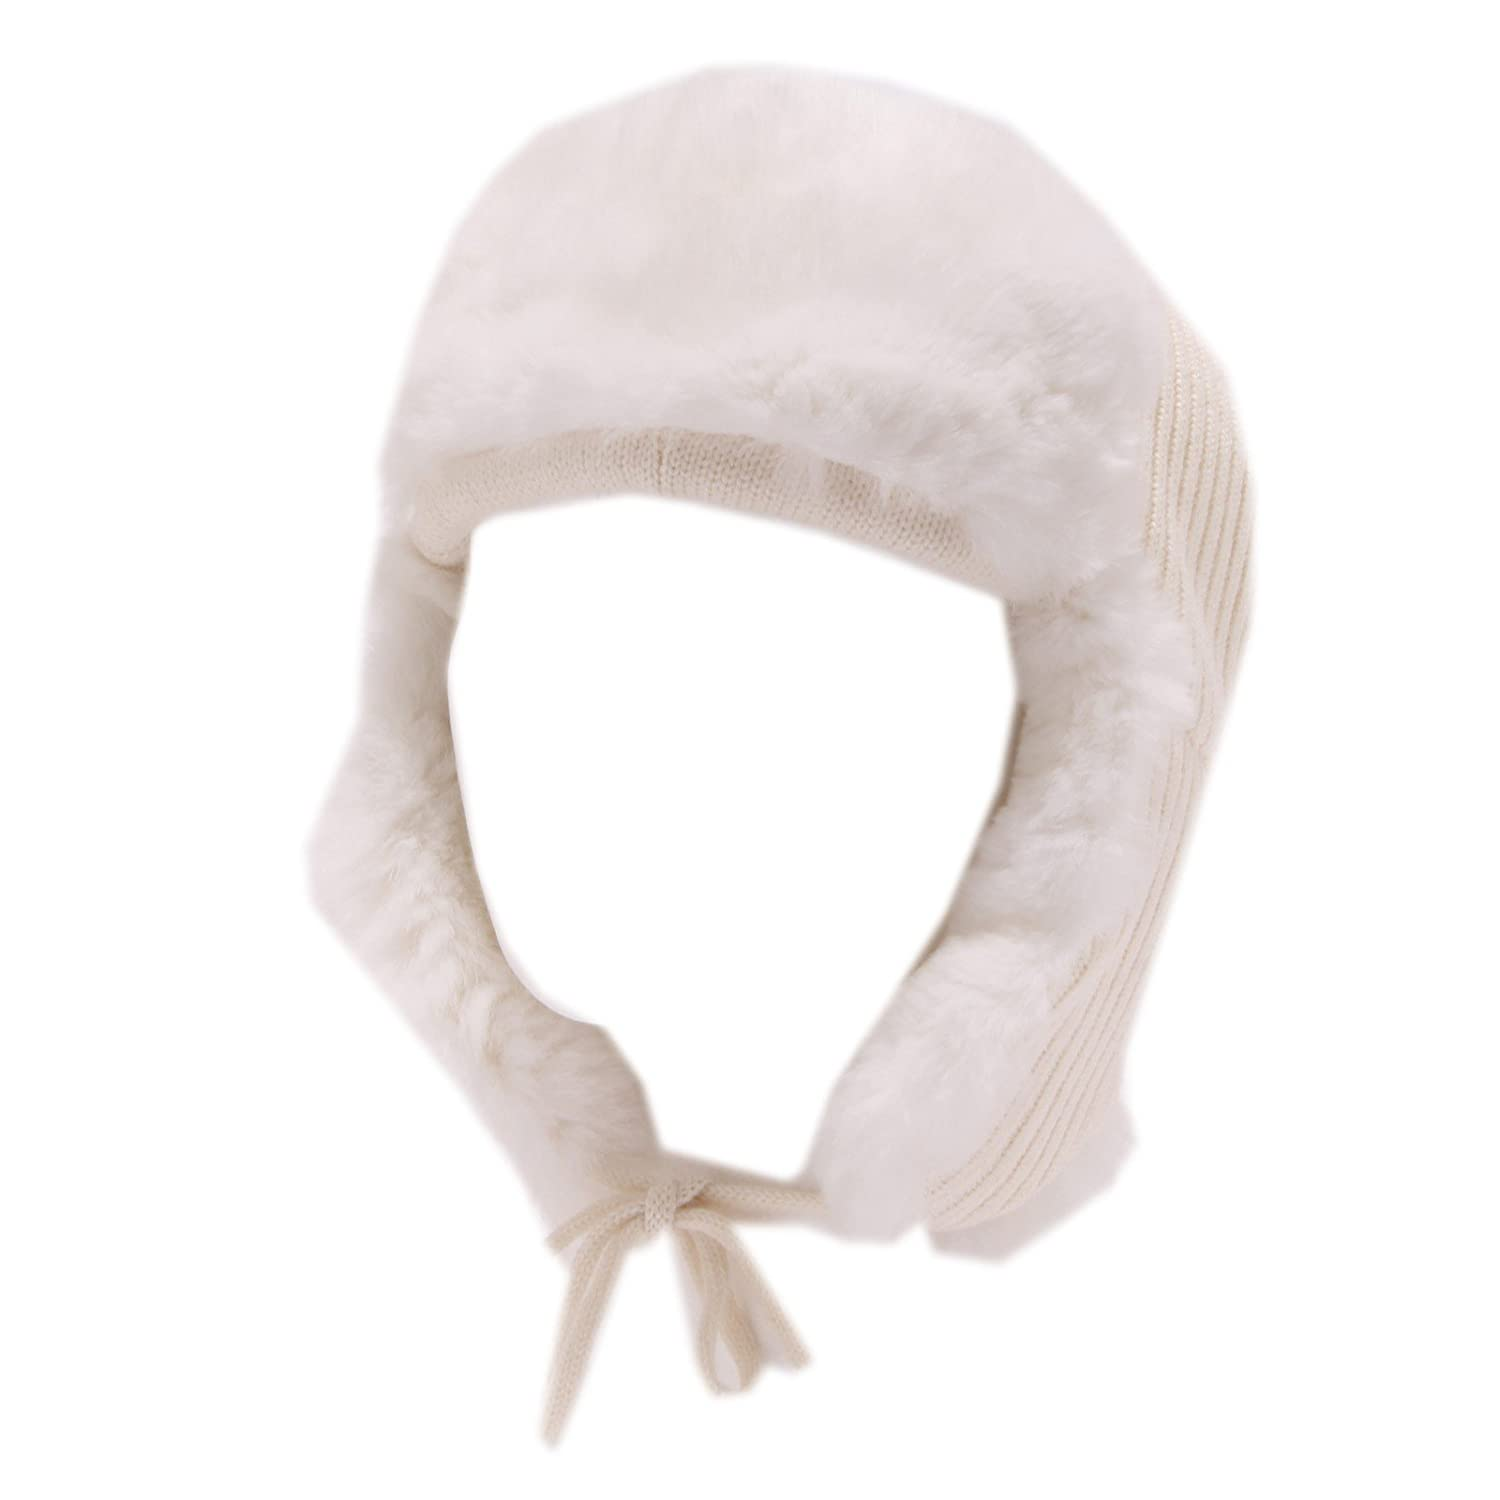 4437U cuffia bimba REGINA BY ANGELA MAFFEI lana fur wool white hat girl